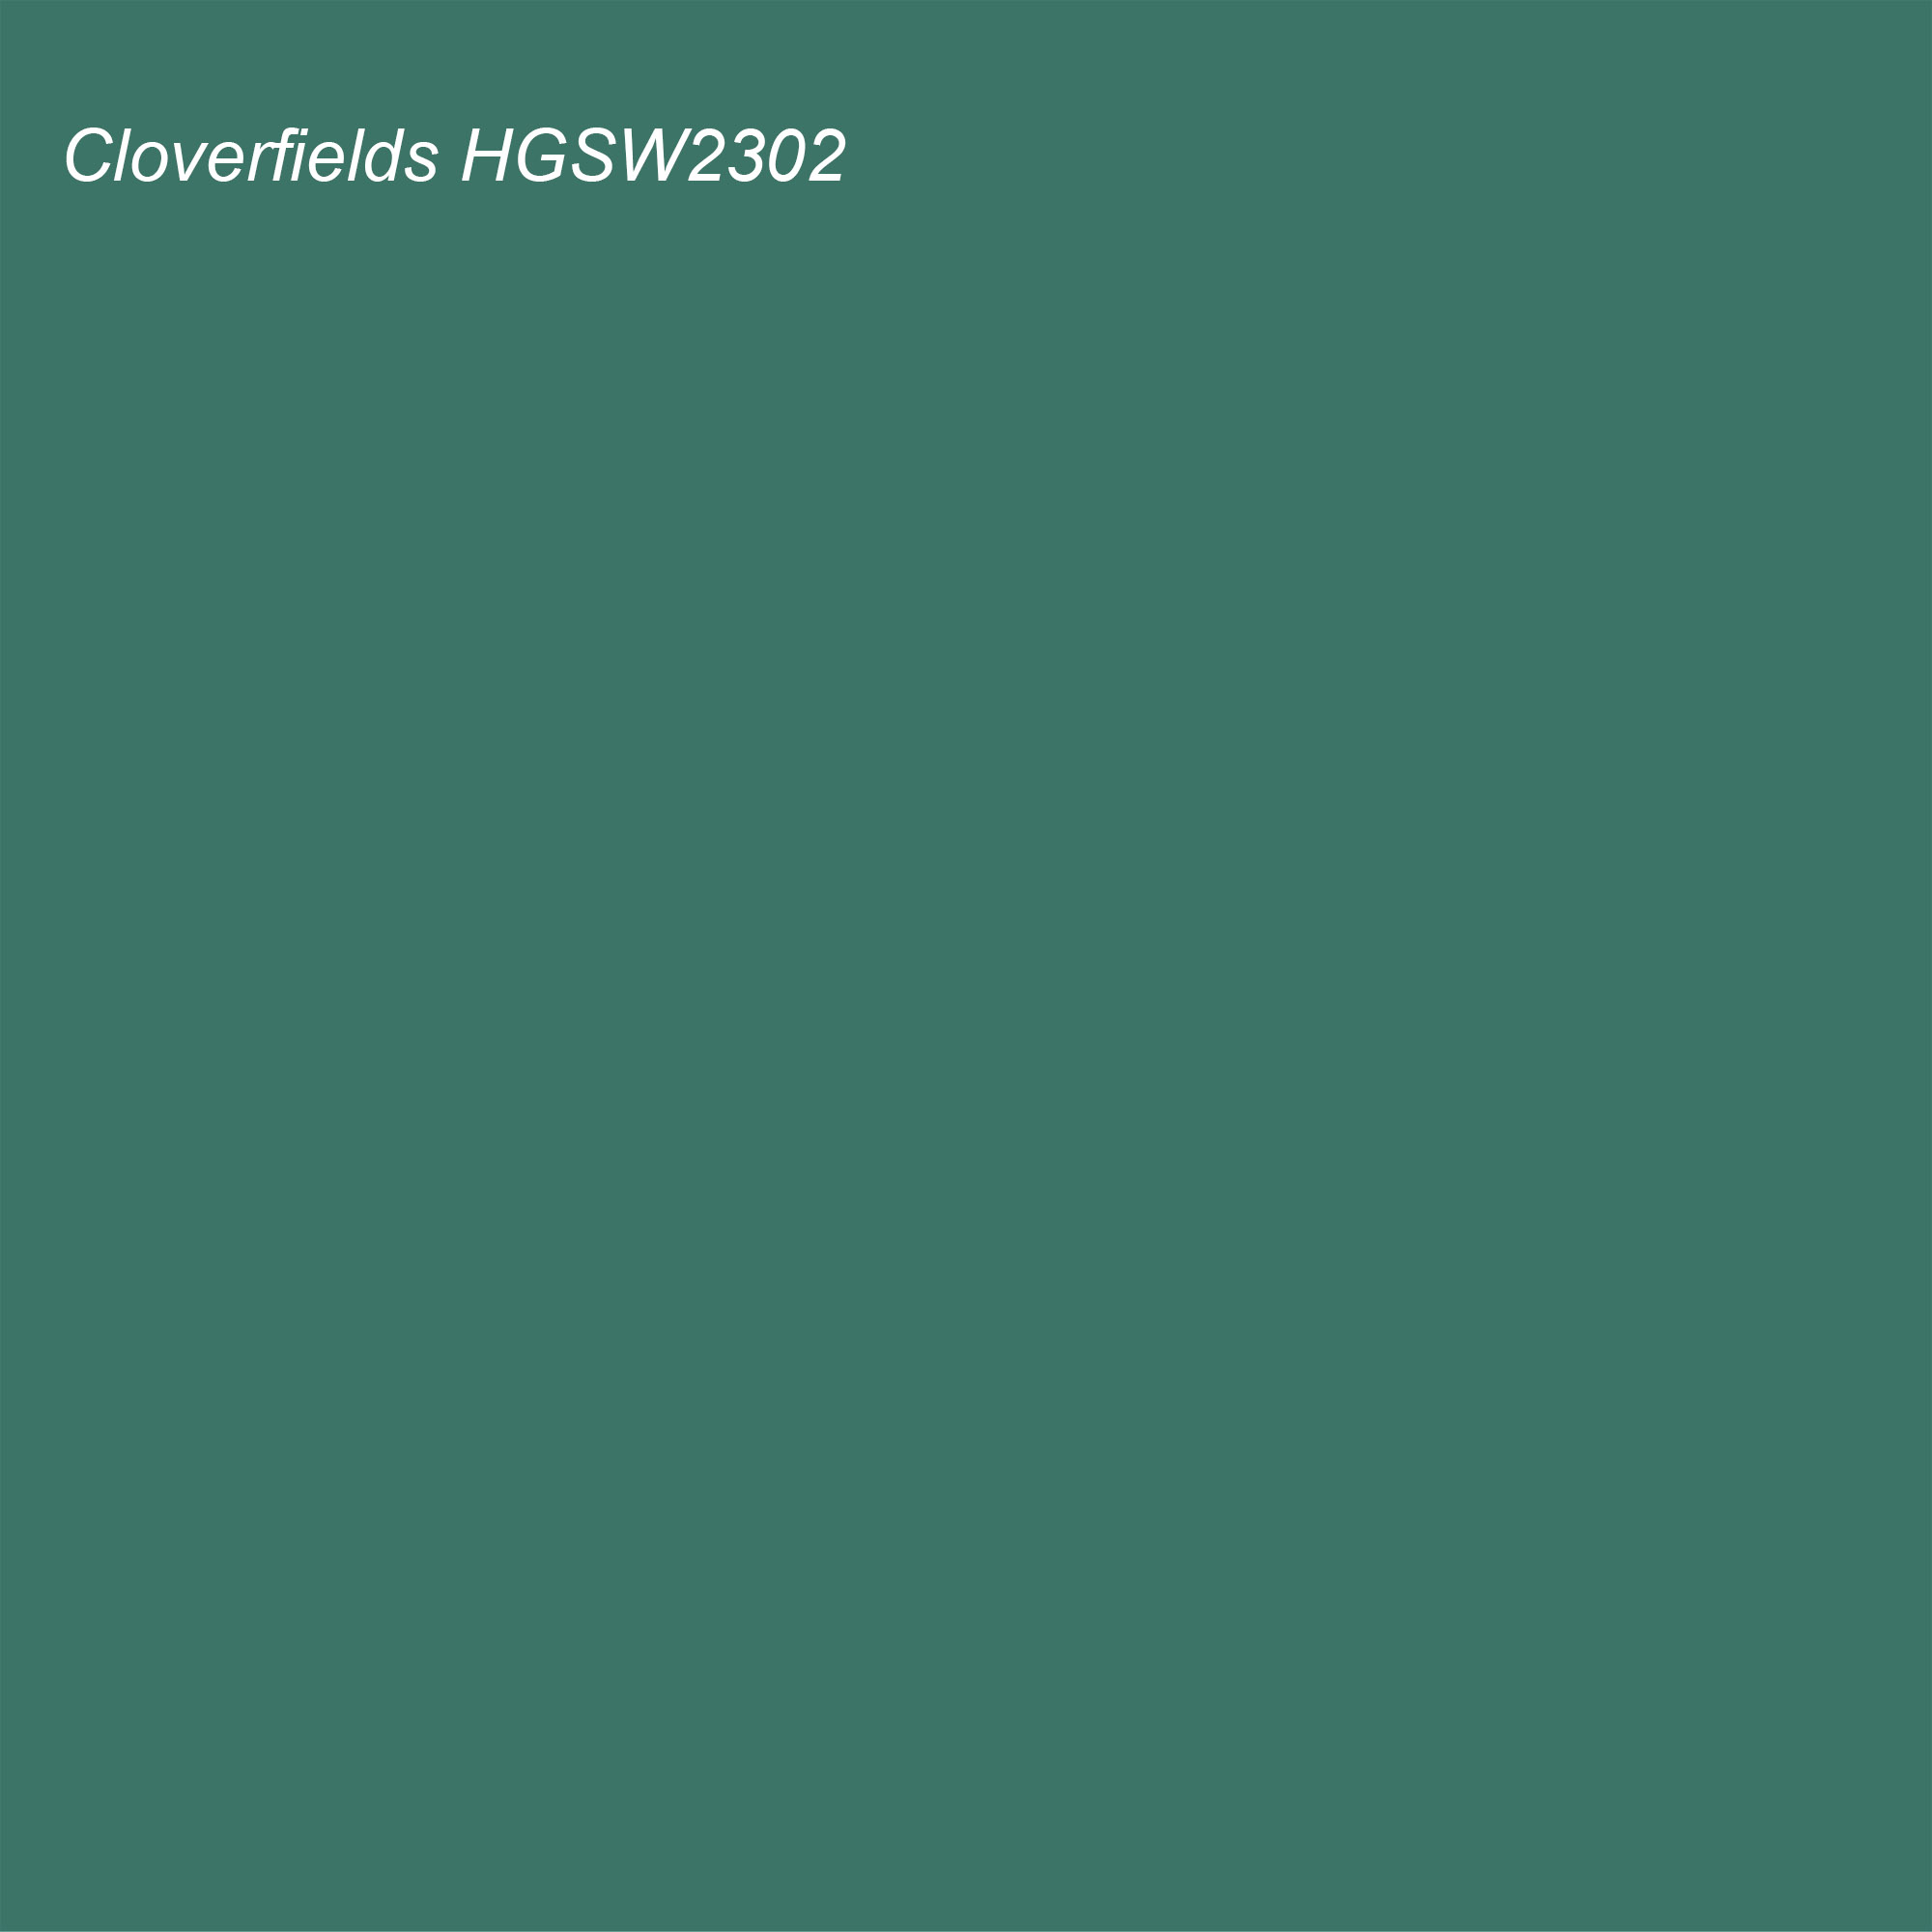 HGTV 2021 Color of the Year Suggested Accent Shade Cloverfields HGSW2302